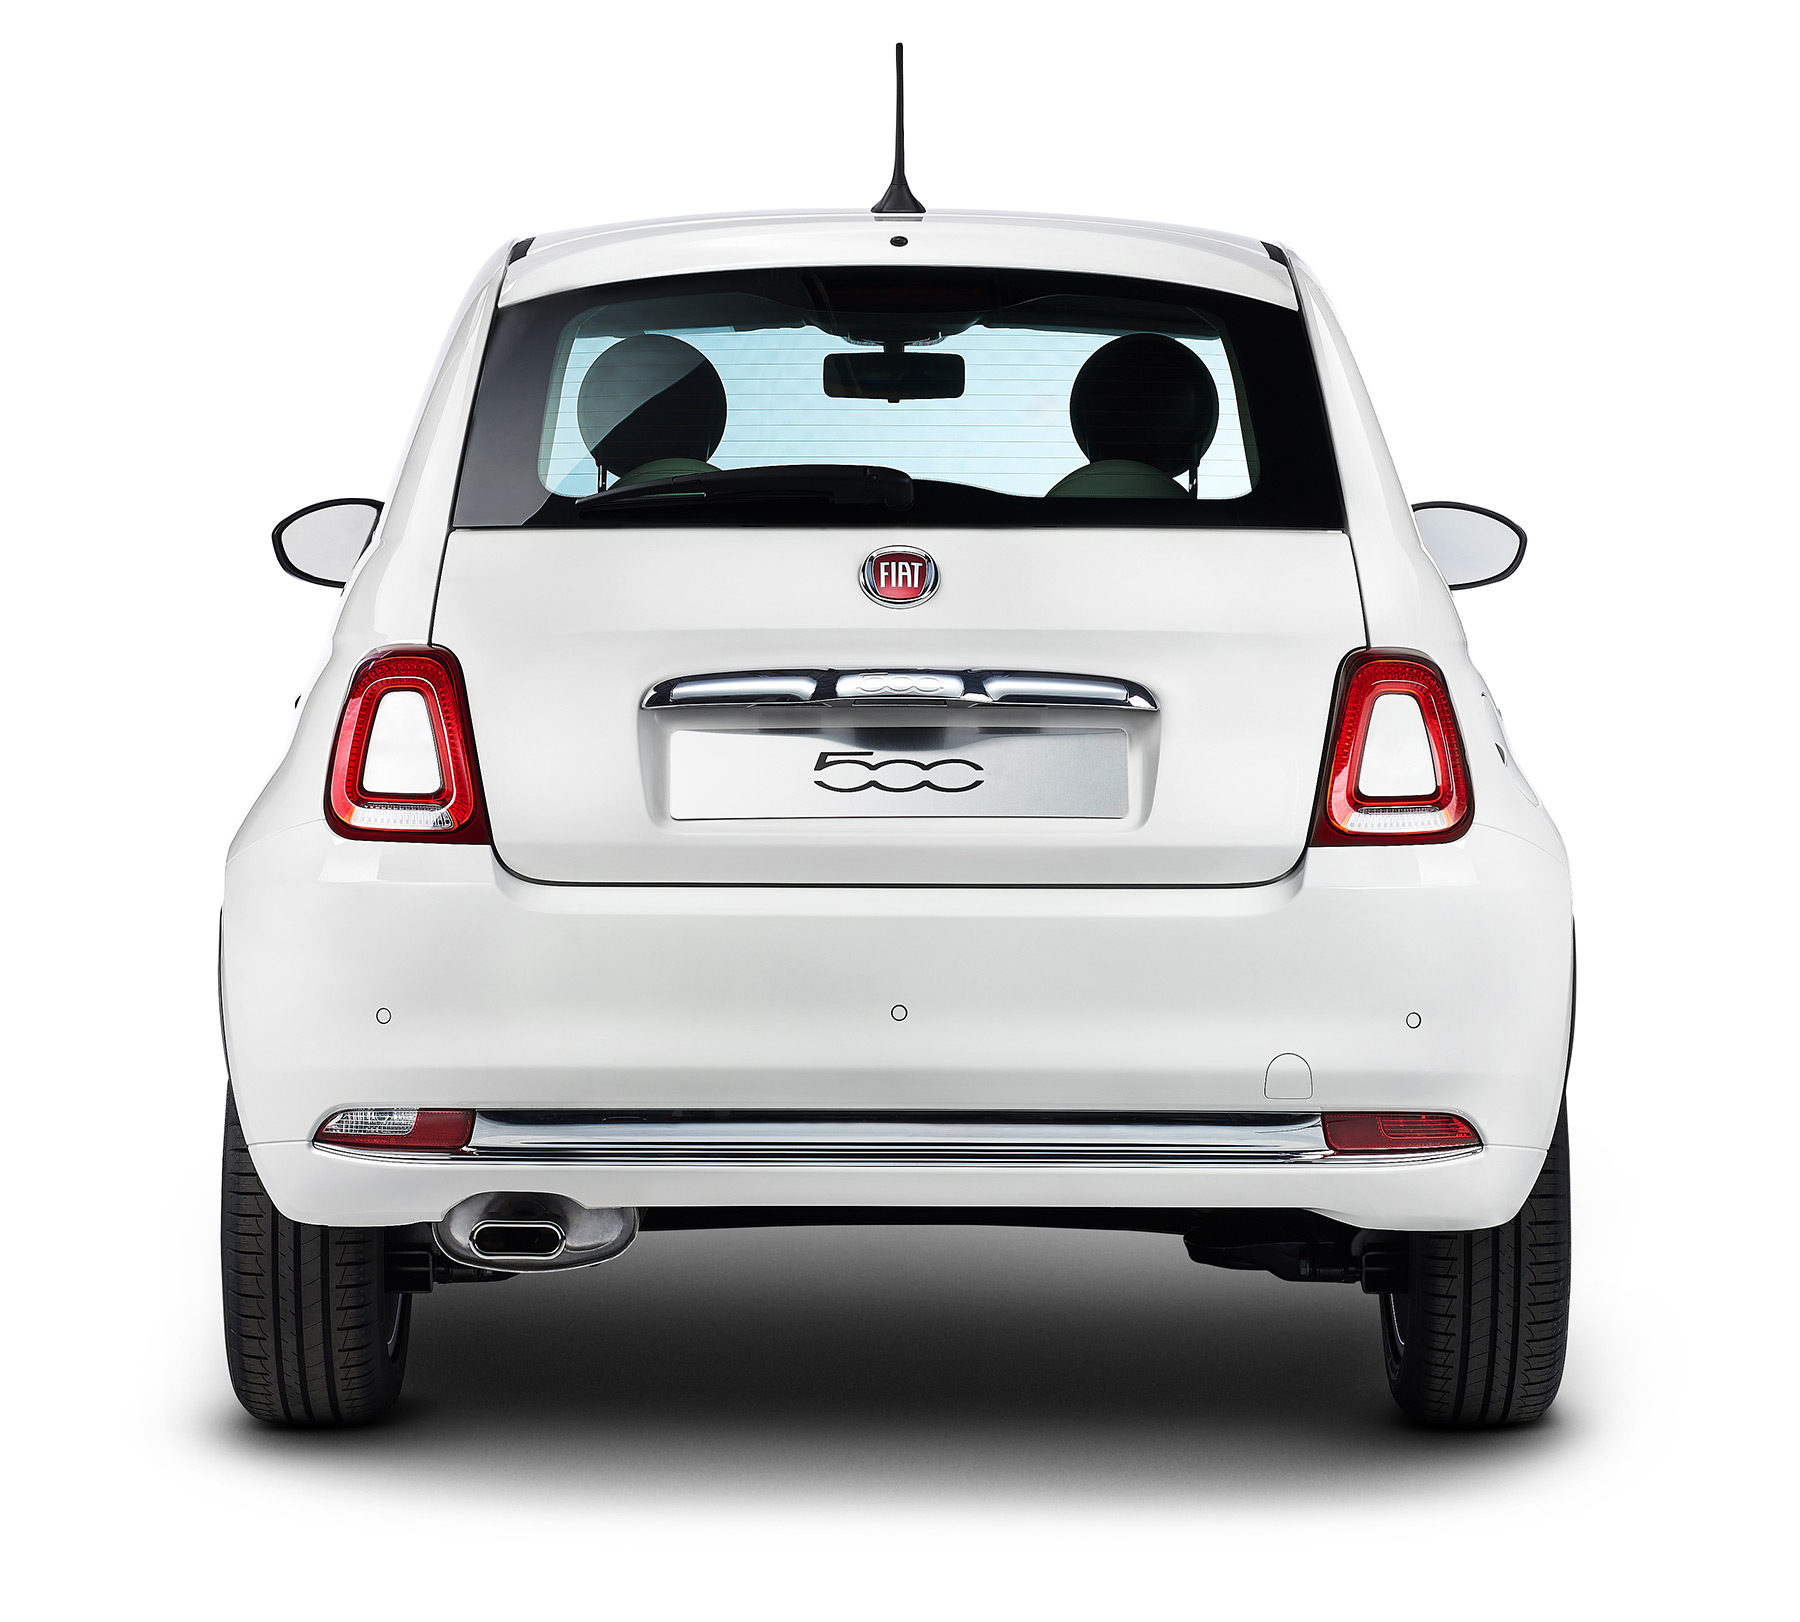 Fiat 500 car photography by CliQQ